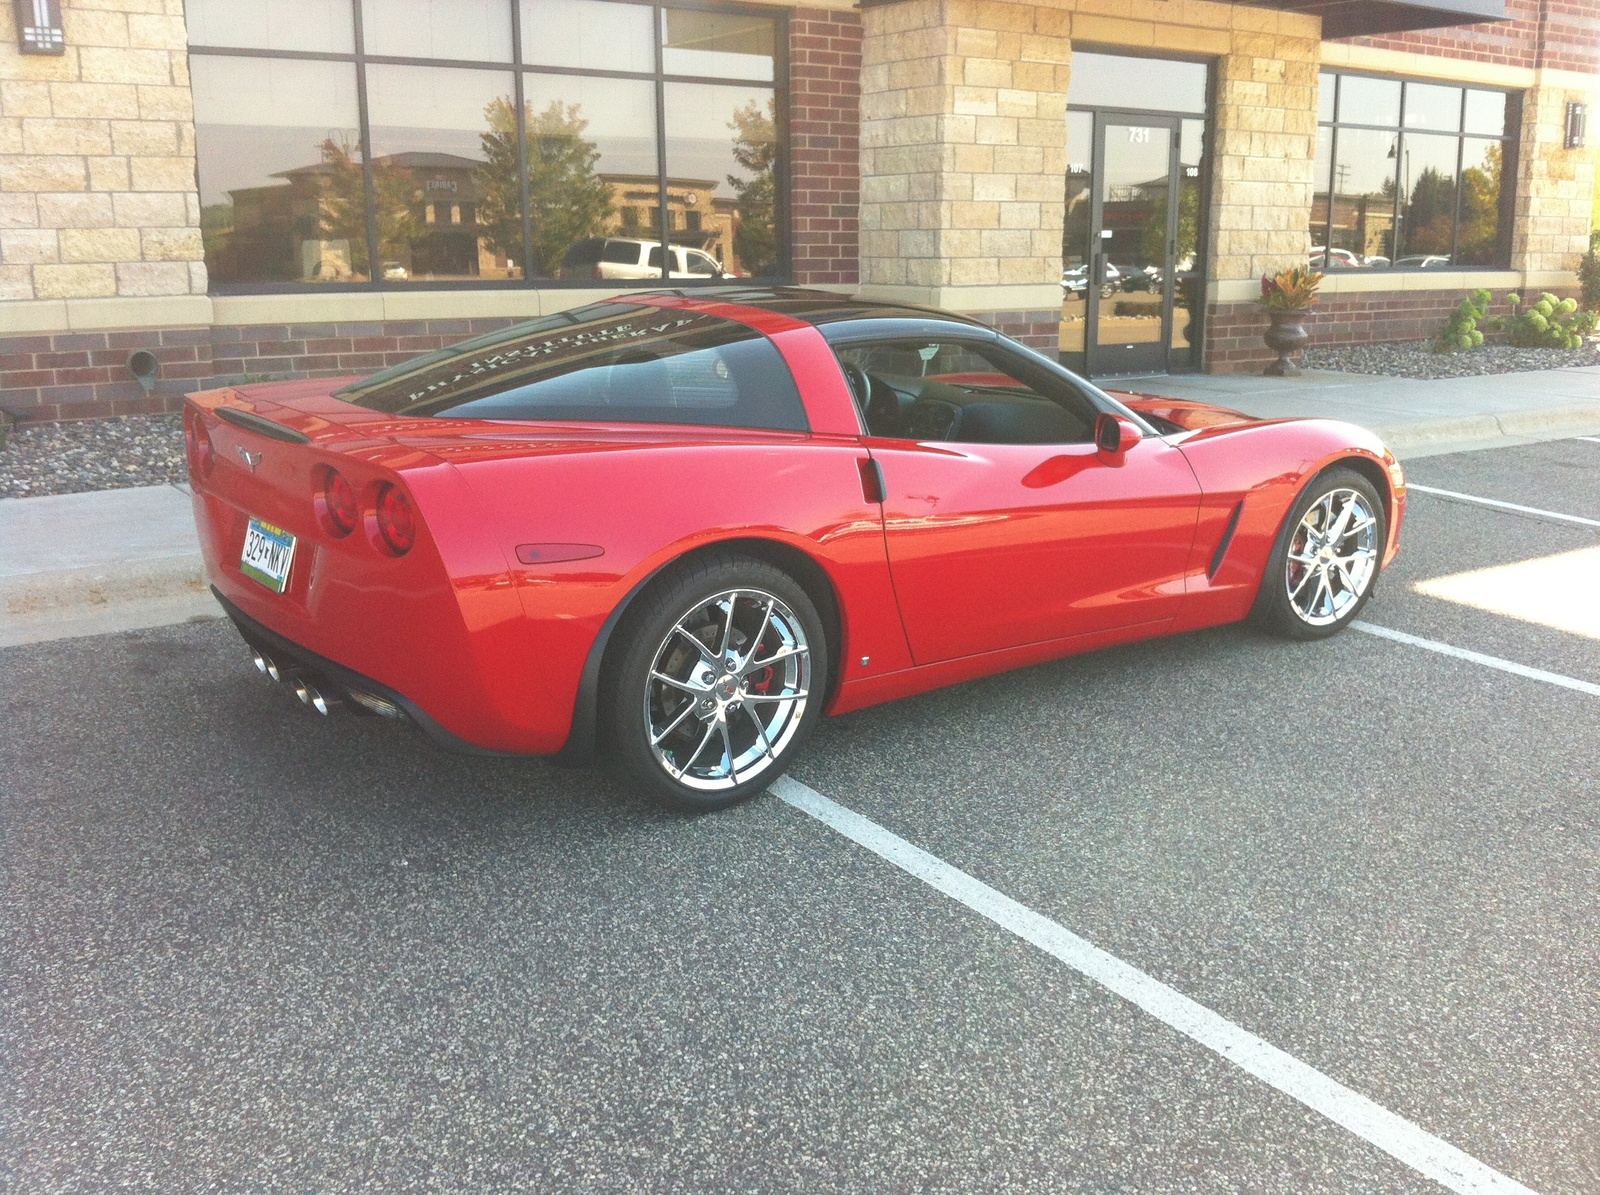 used chevrolet corvette for sale minneapolis mn cargurus. Black Bedroom Furniture Sets. Home Design Ideas